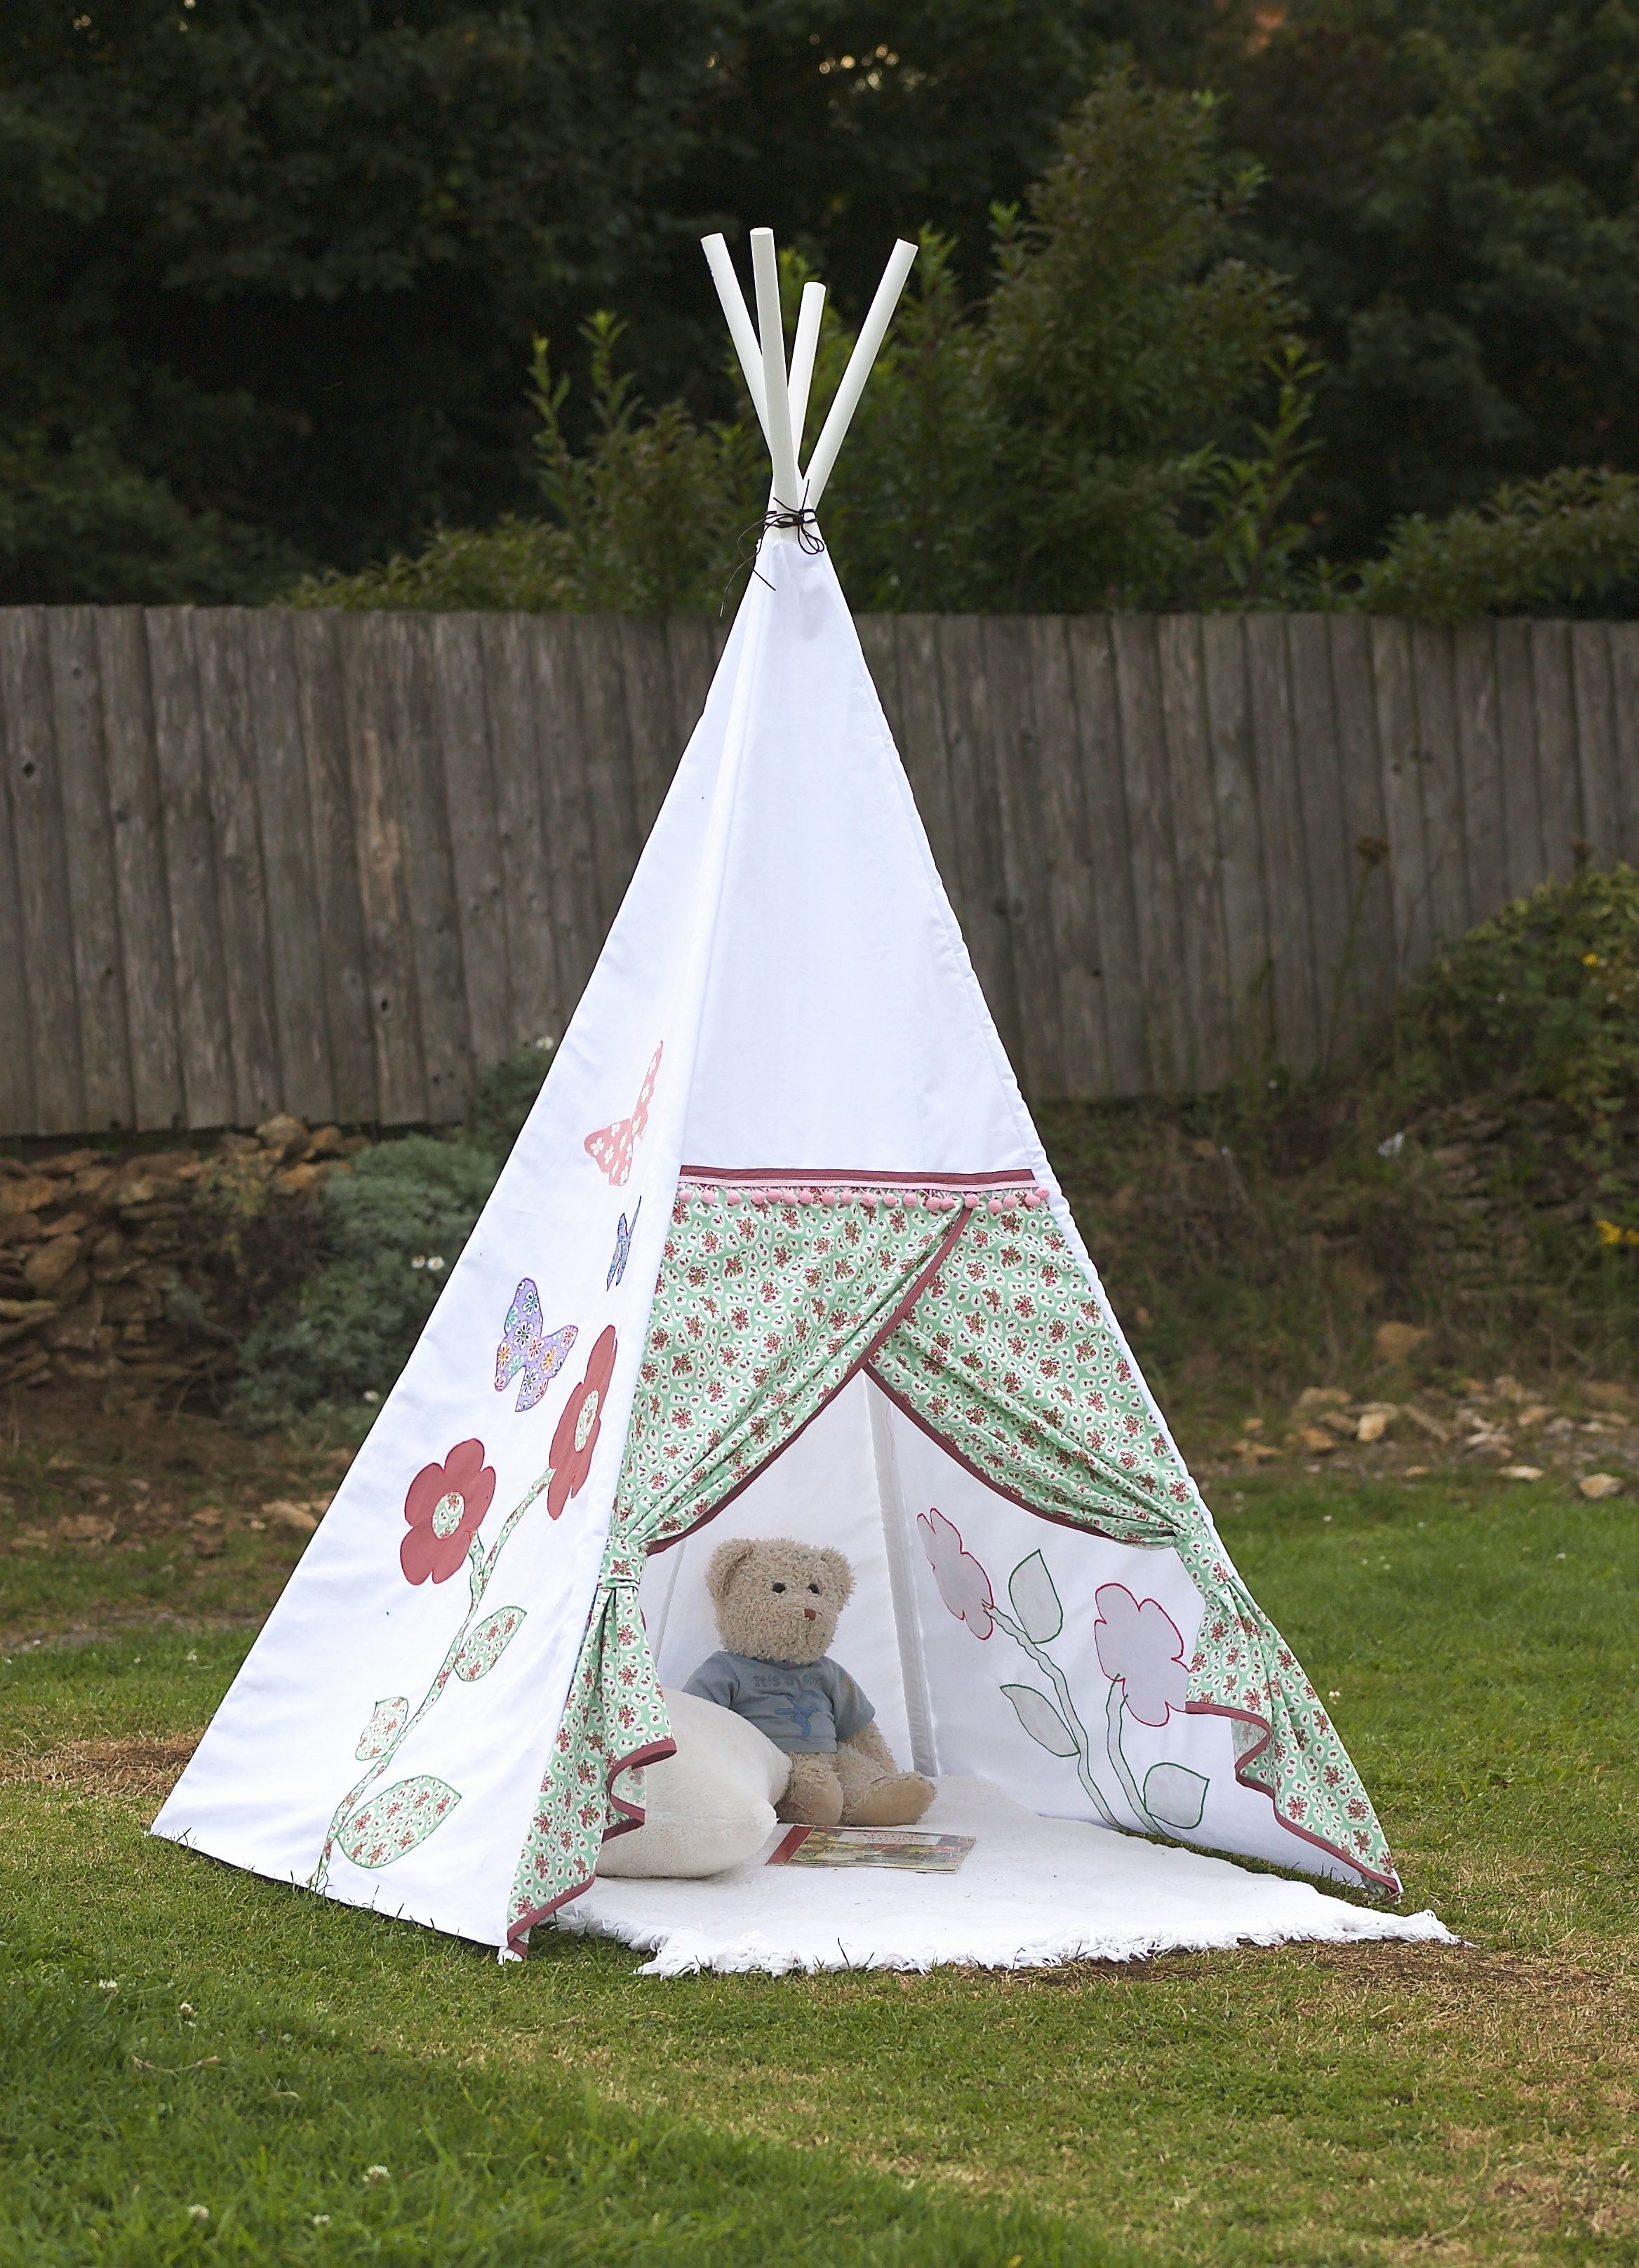 How to Make Name Tents Elegant How to Make A Child's Teepee Wigwam